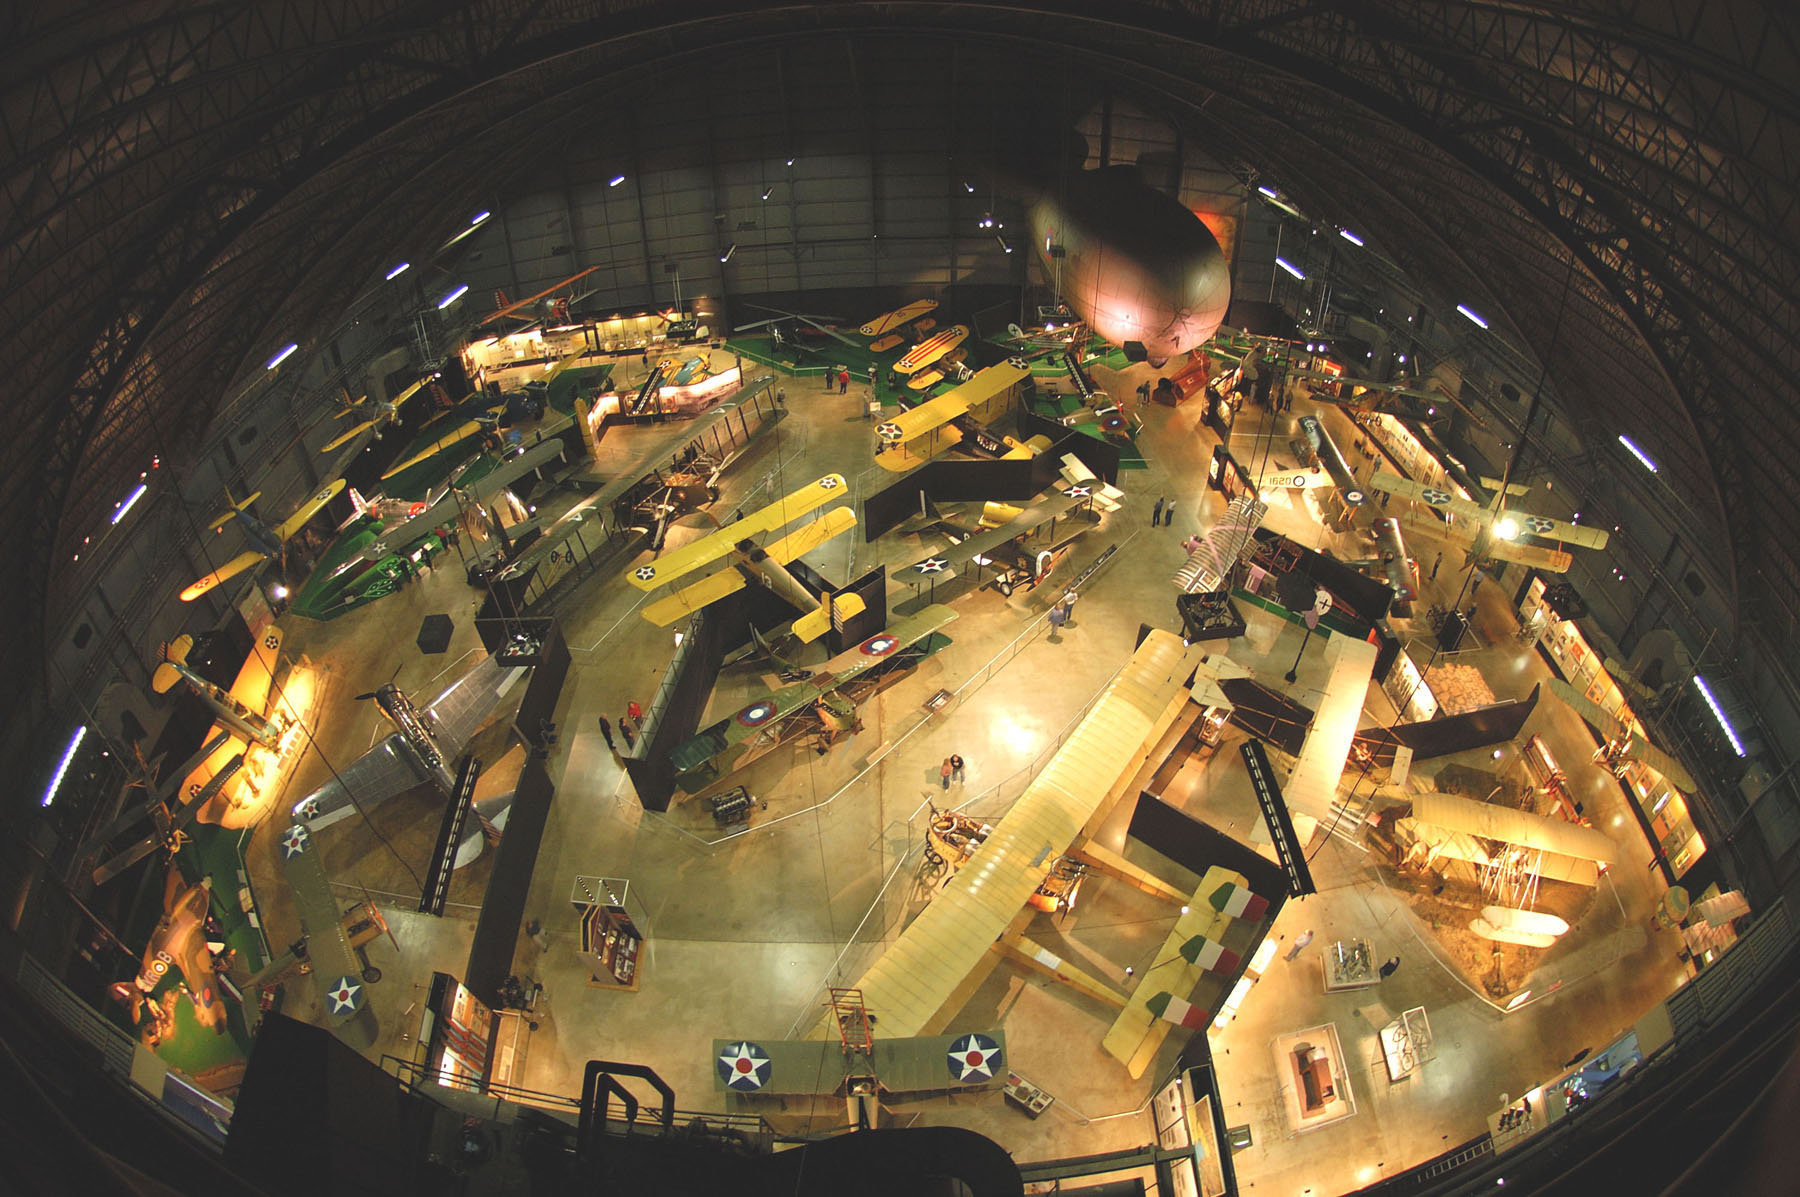 The museum's Early Years Gallery conveys the magic and wonder of the formative days of military air power.